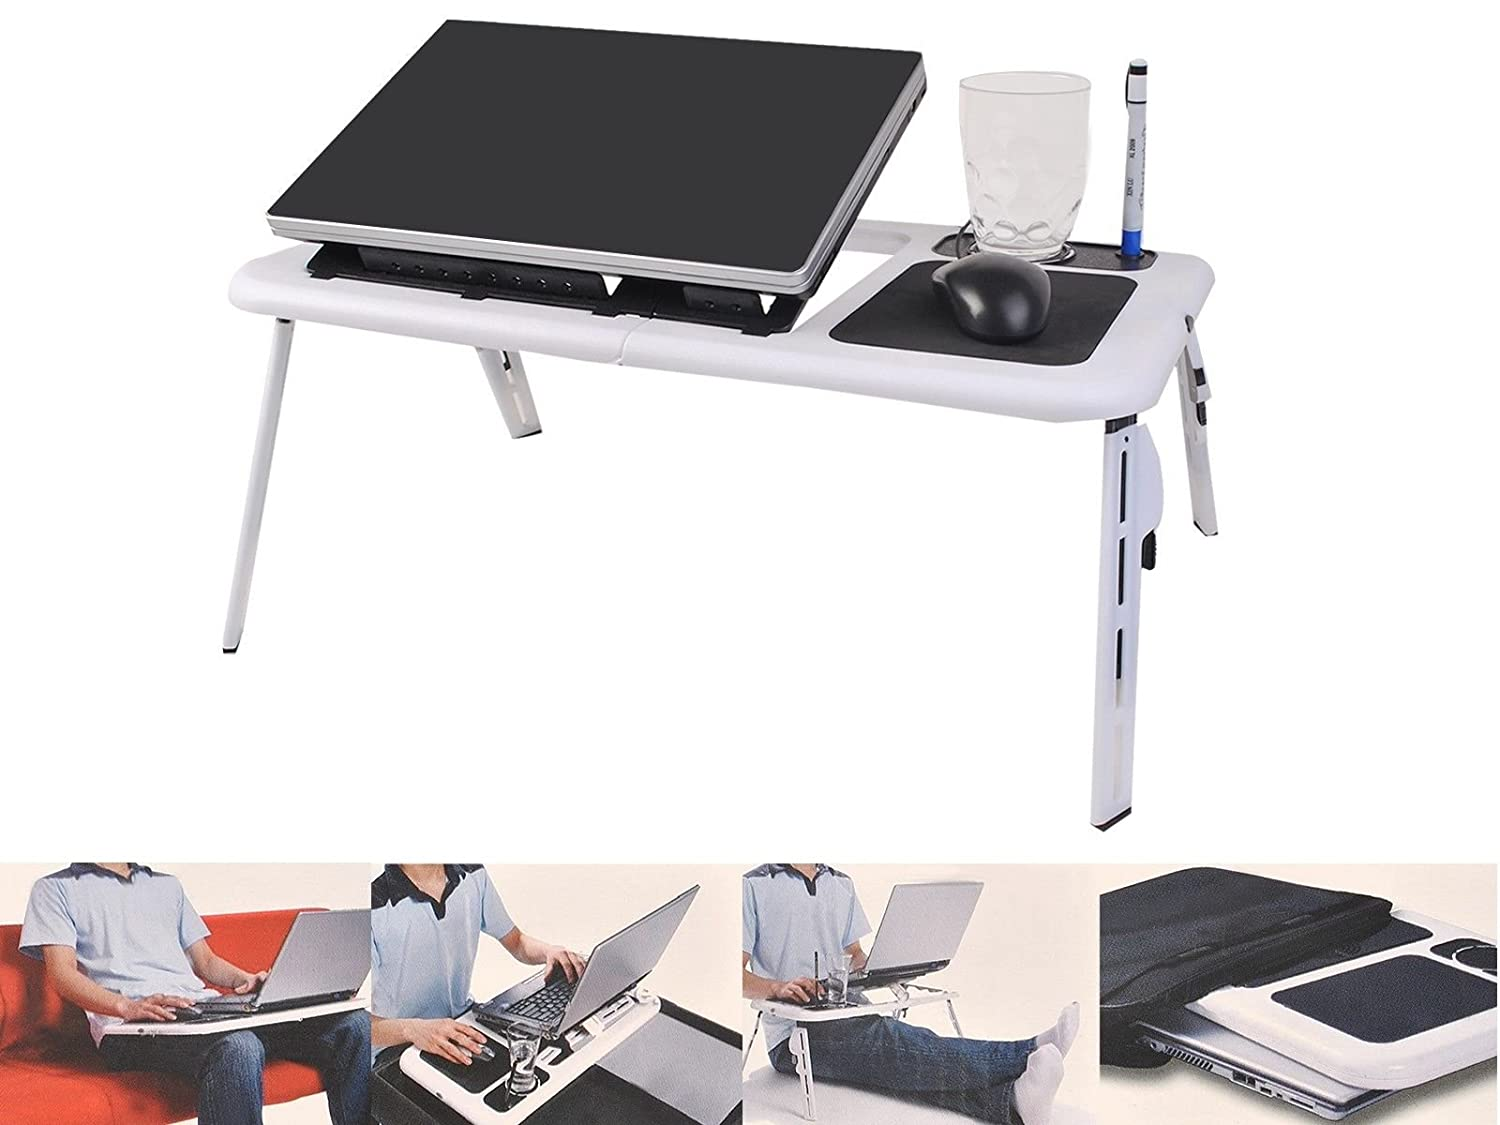 Amazon.com : Foldable Laptop Table Tray Desk W/Cooling Fan Tablet Desk  Stand Bed Sofa Couch By SNC : Office Products